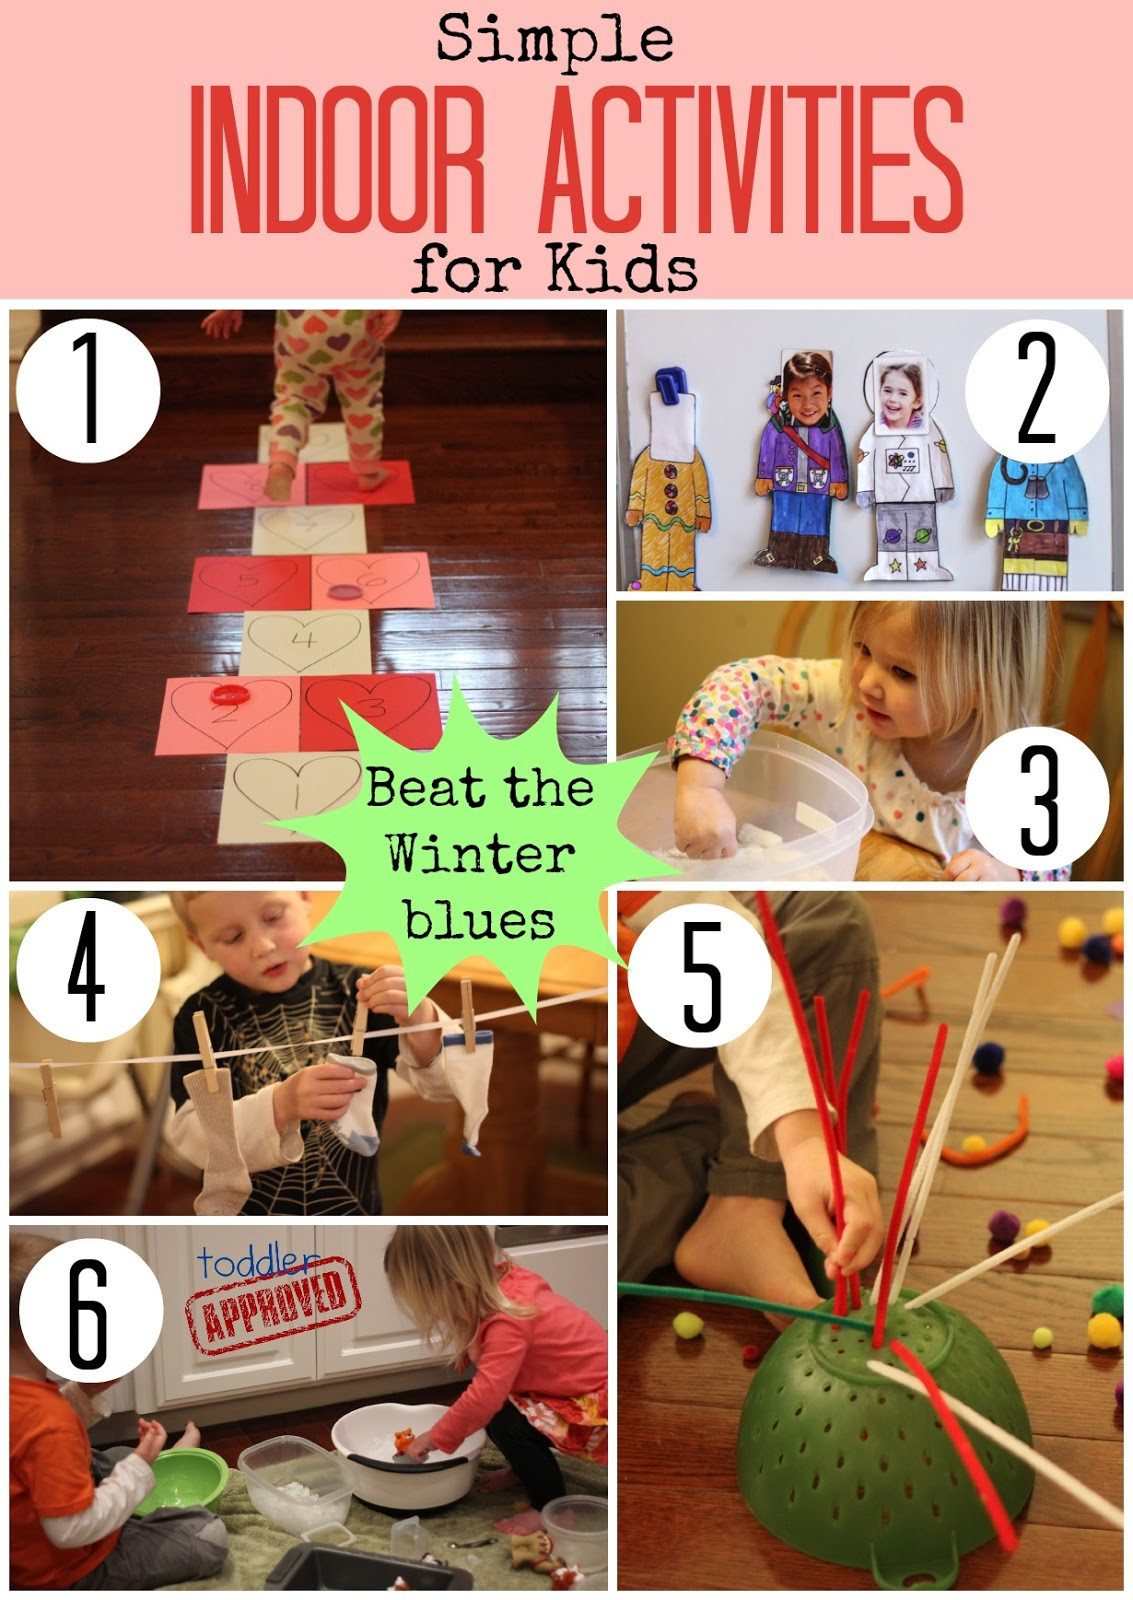 Best ideas about Simple Activities For Kids . Save or Pin Toddler Approved Simple Indoor Activities for Kids Now.